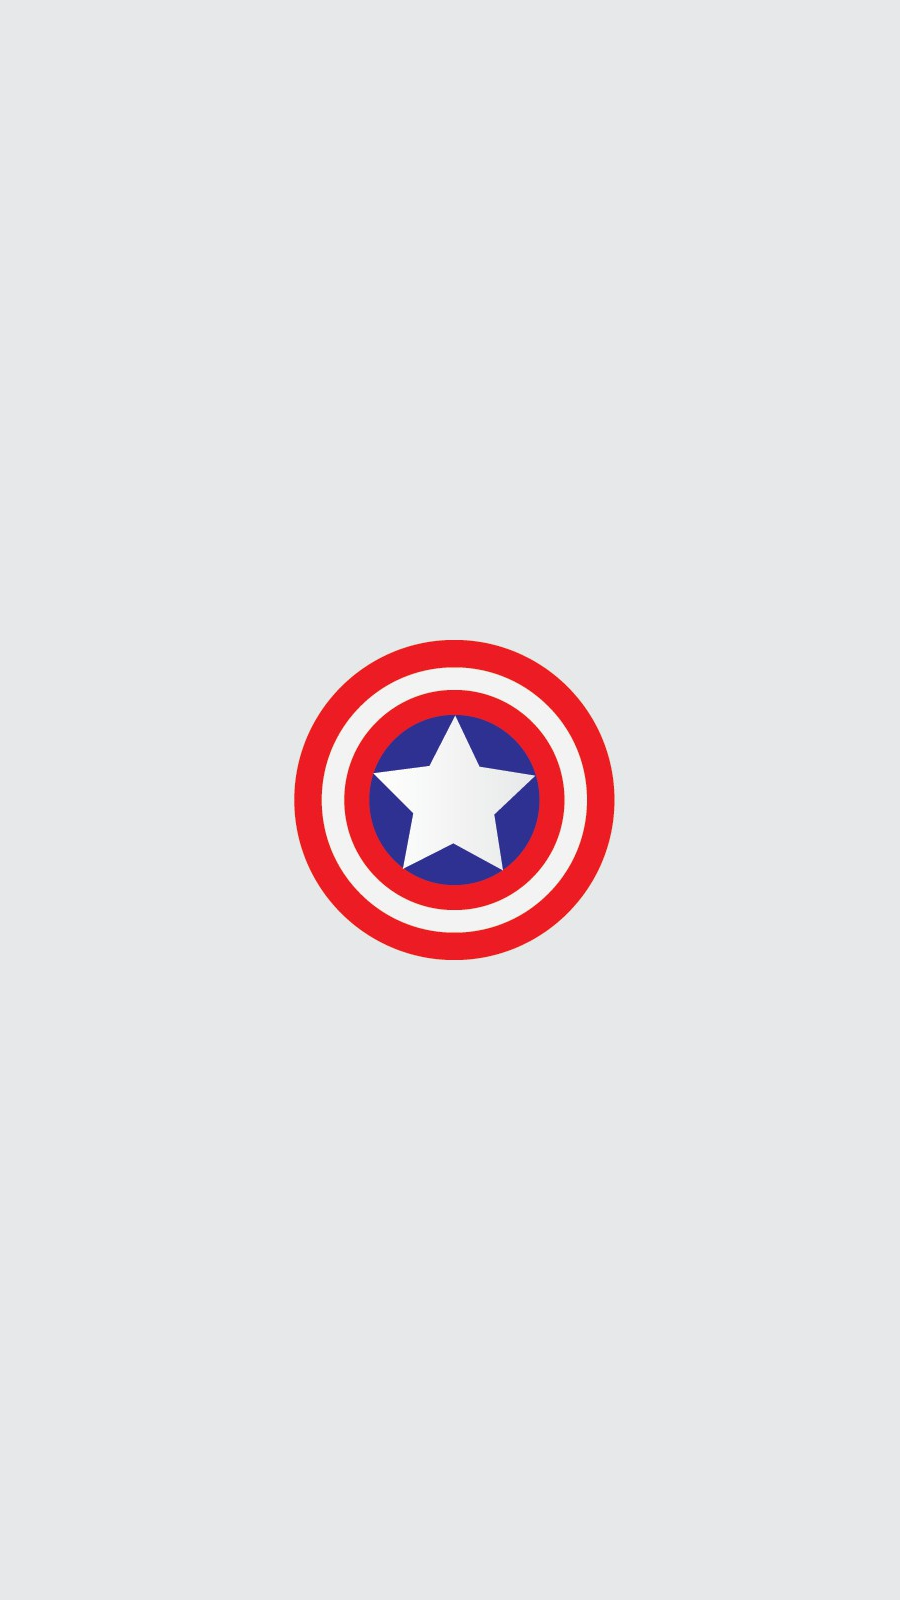 Cute Little Girl Wallpapers With Quotes Captain America Shield Iphone Wallpaper Iphone Wallpapers